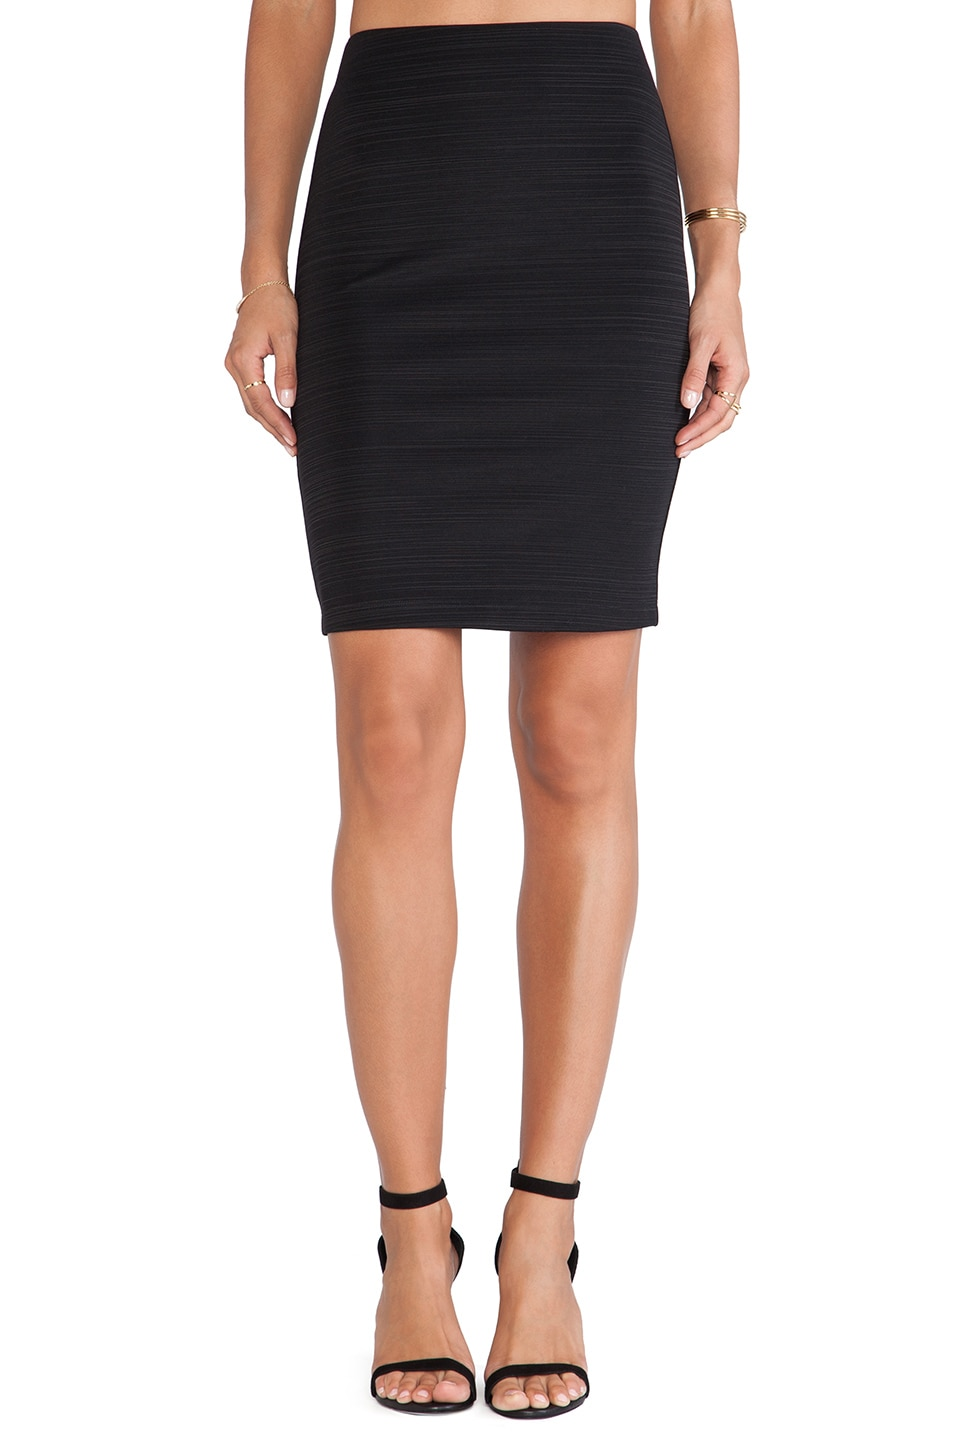 Heather Ponti Pencil Skirt in Black